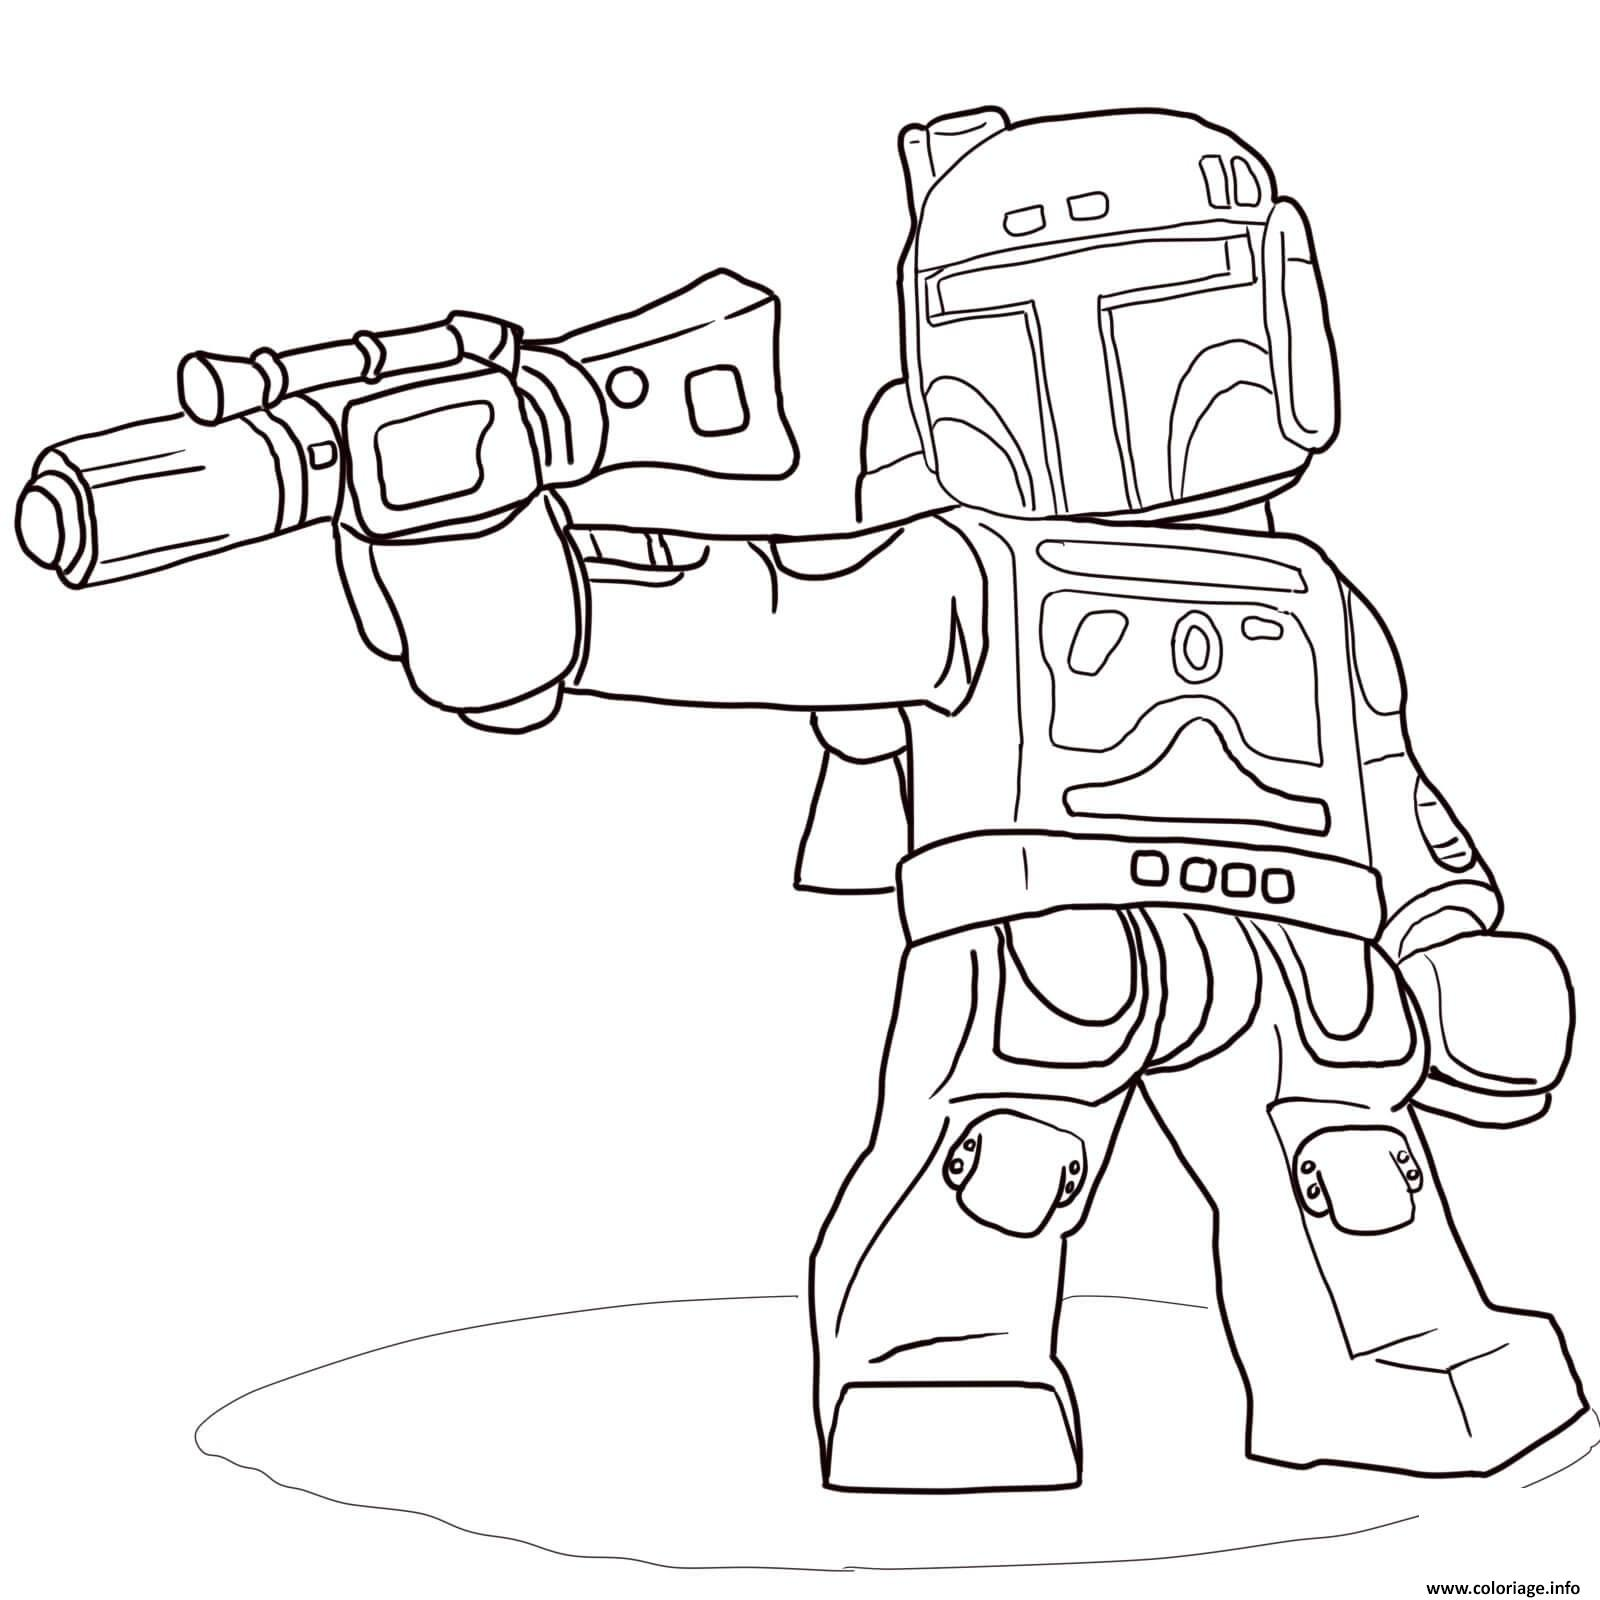 Coloriage lego star wars 57 dessin - Dessin lego star wars ...